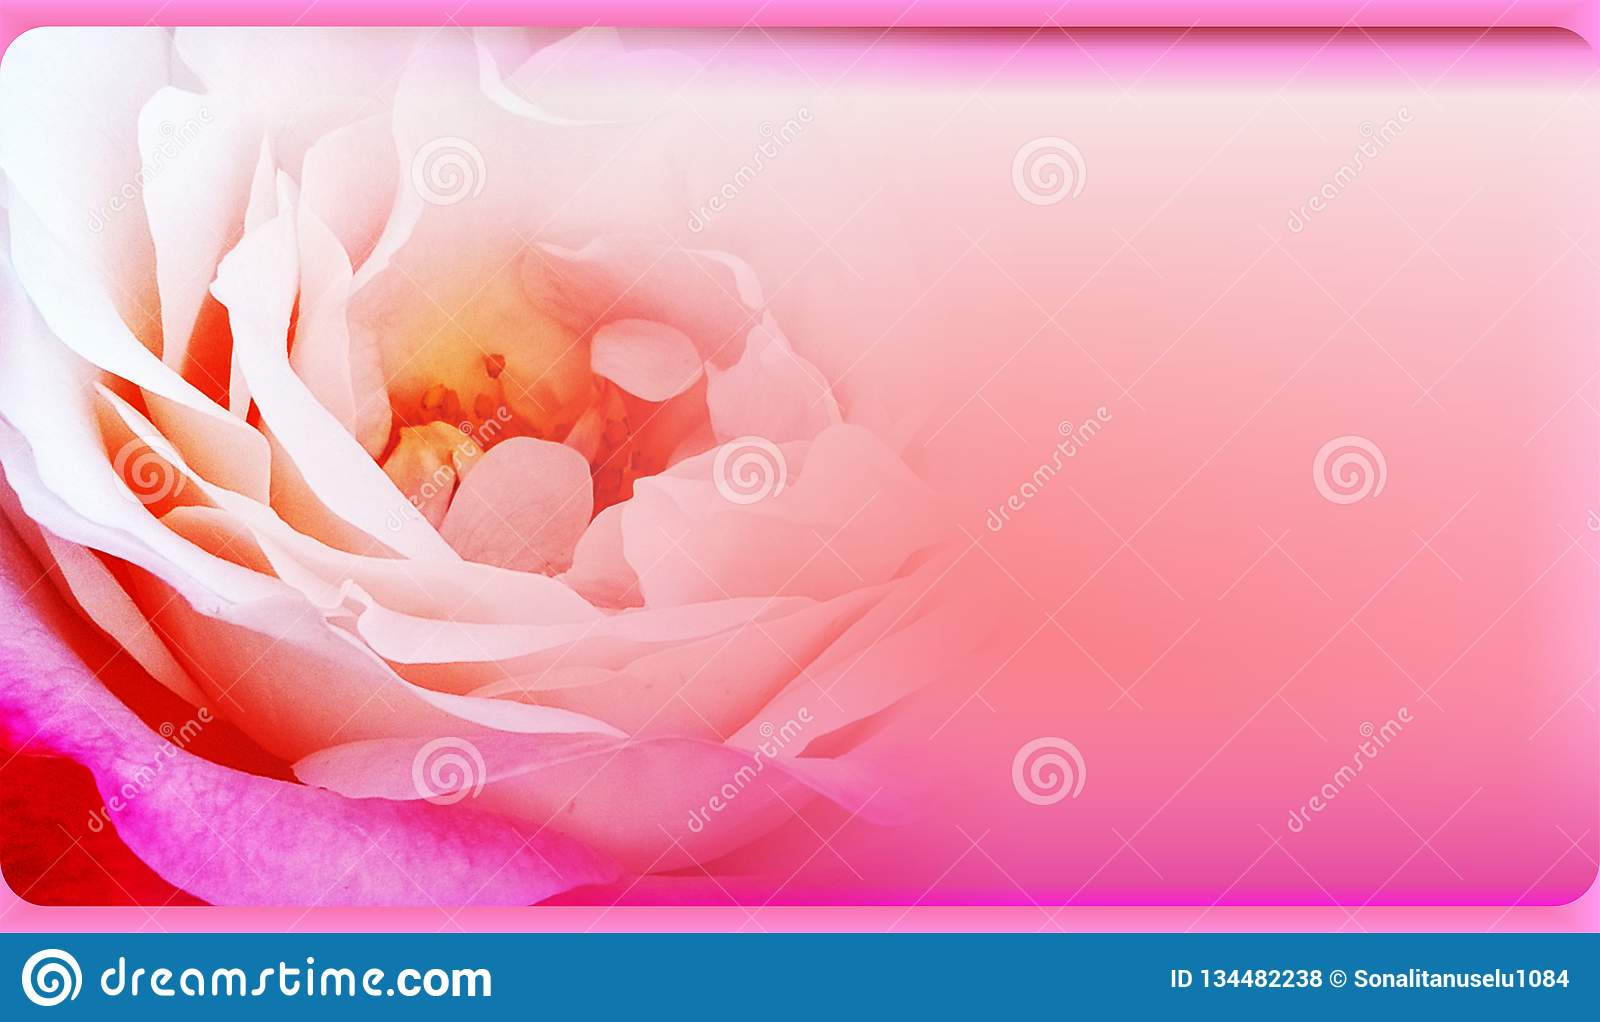 Roses In Soft Color Made With Blur Style For Background Blurred Of Rose Flowers Blooming In The Pastel Color Style Stock Illustration Illustration Of Makeup Pattern 134482238